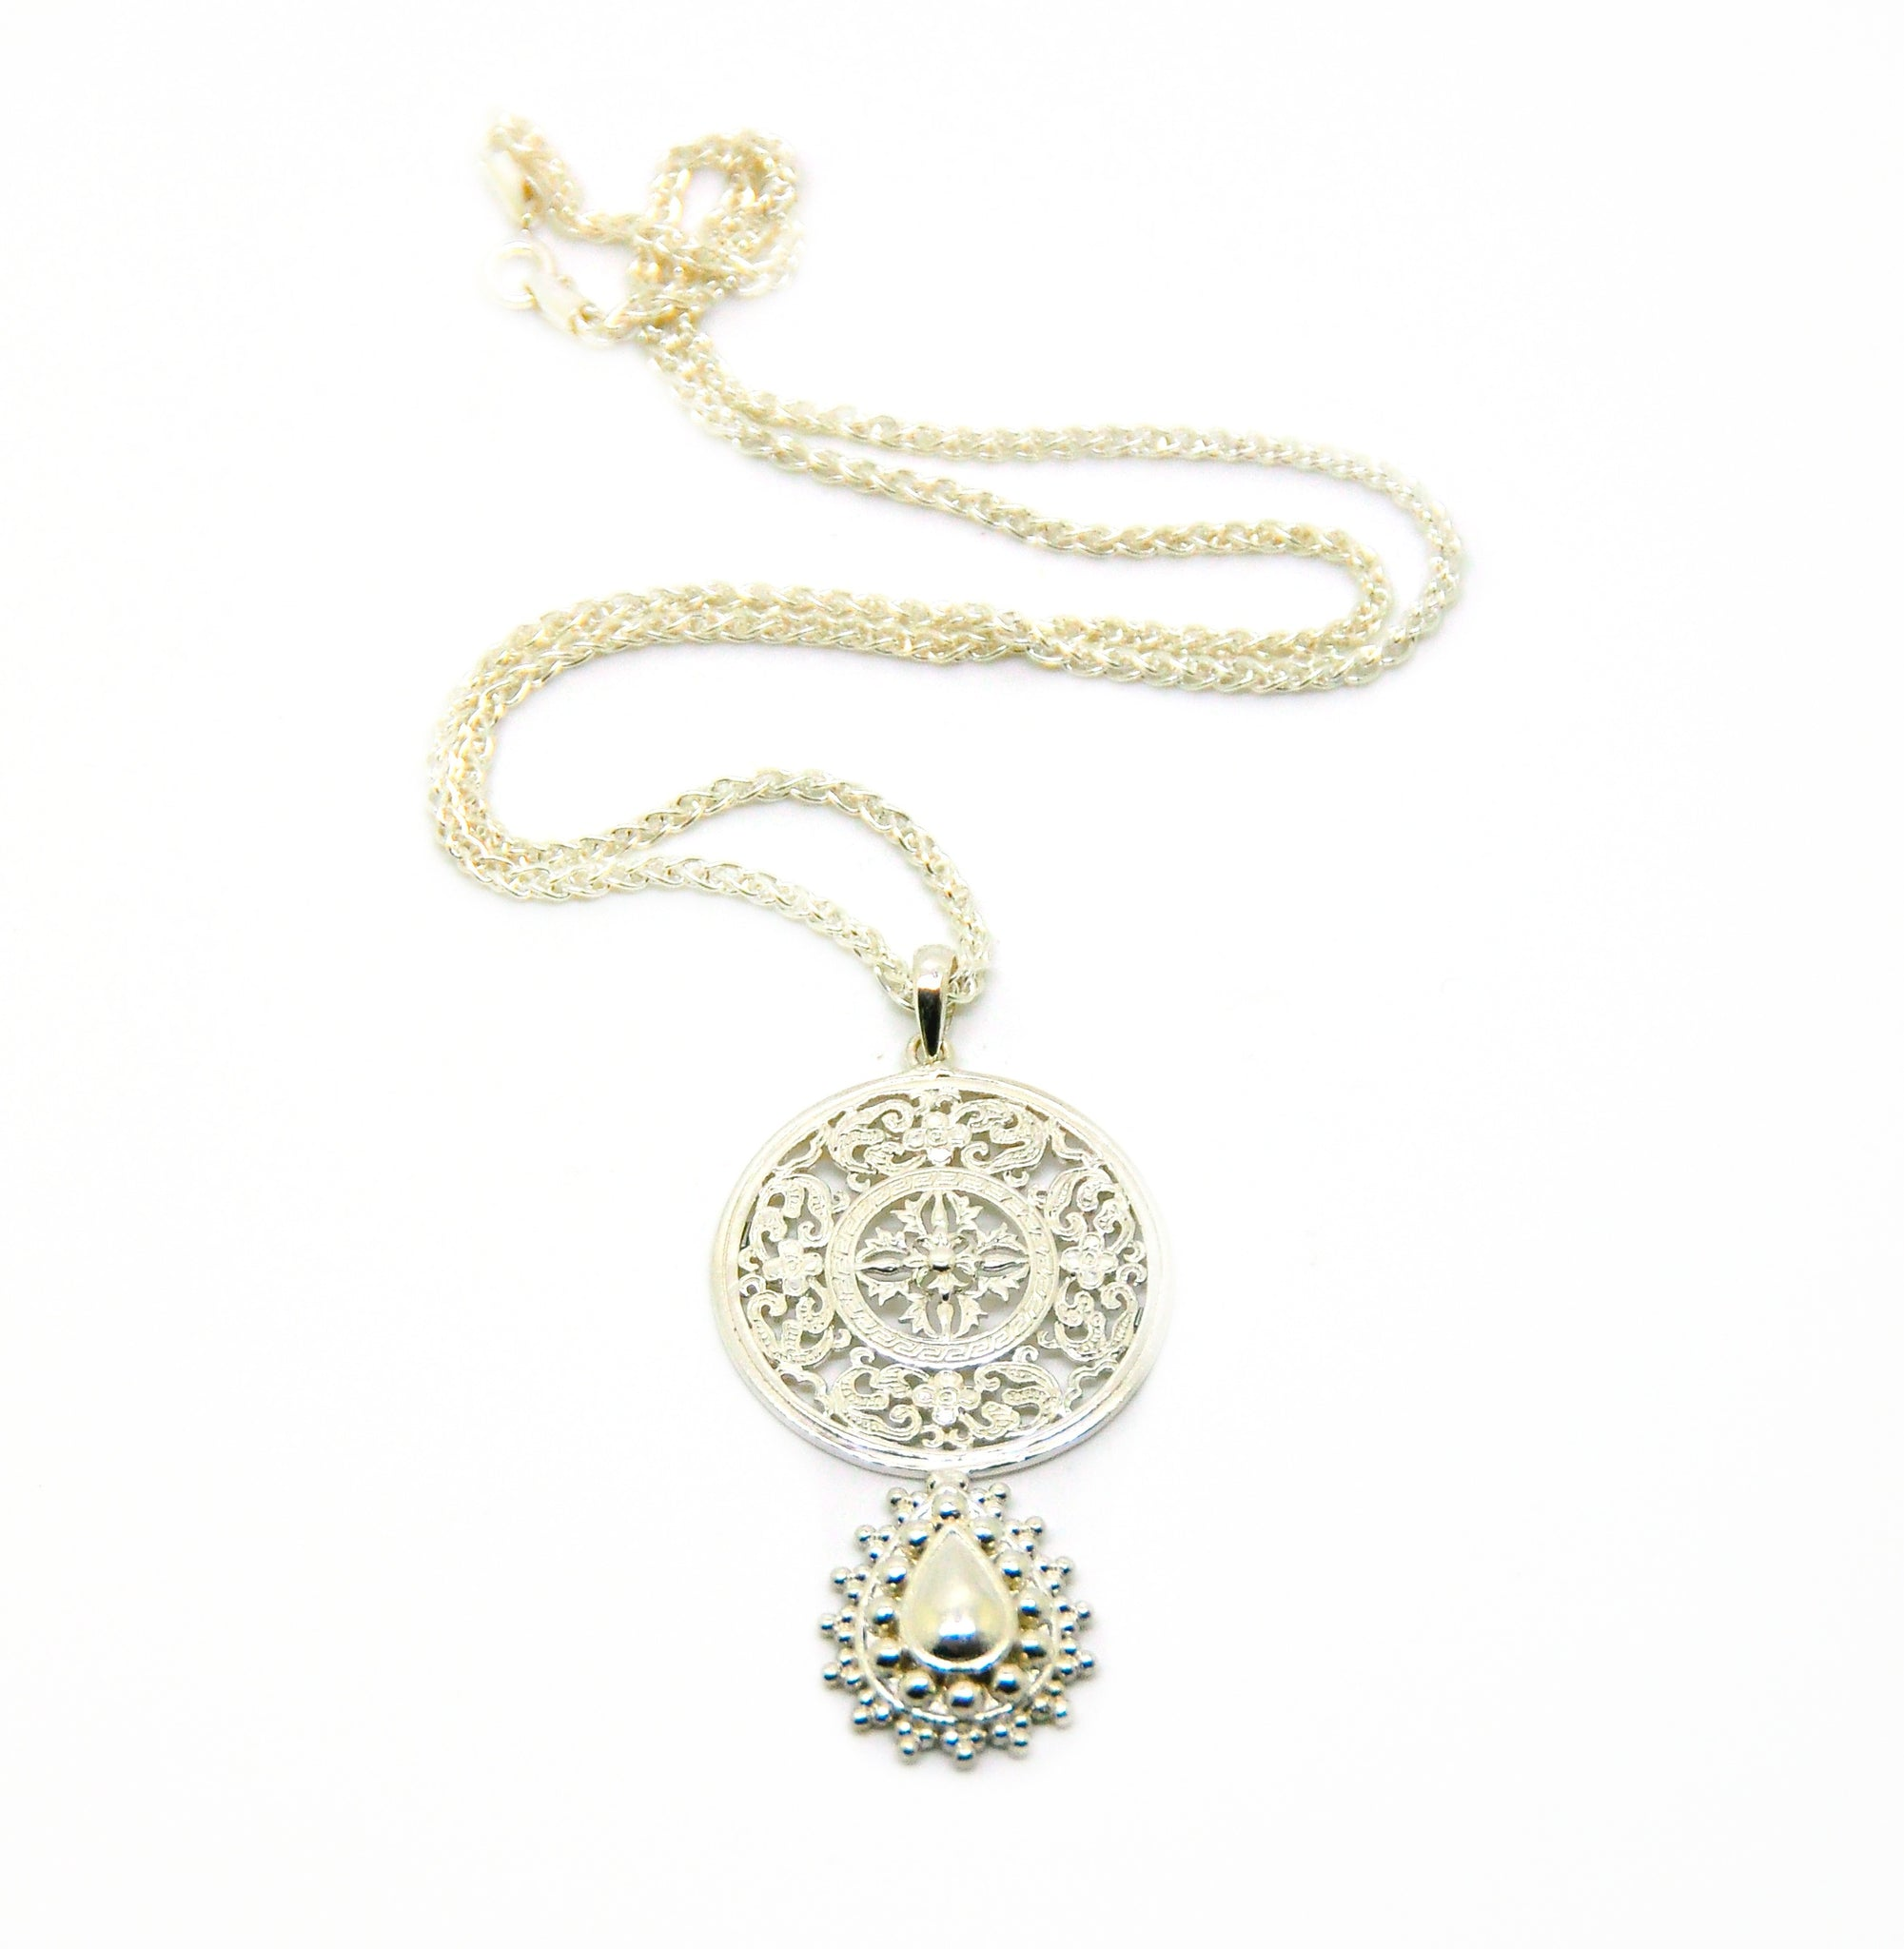 ON SALE Medallion pendant